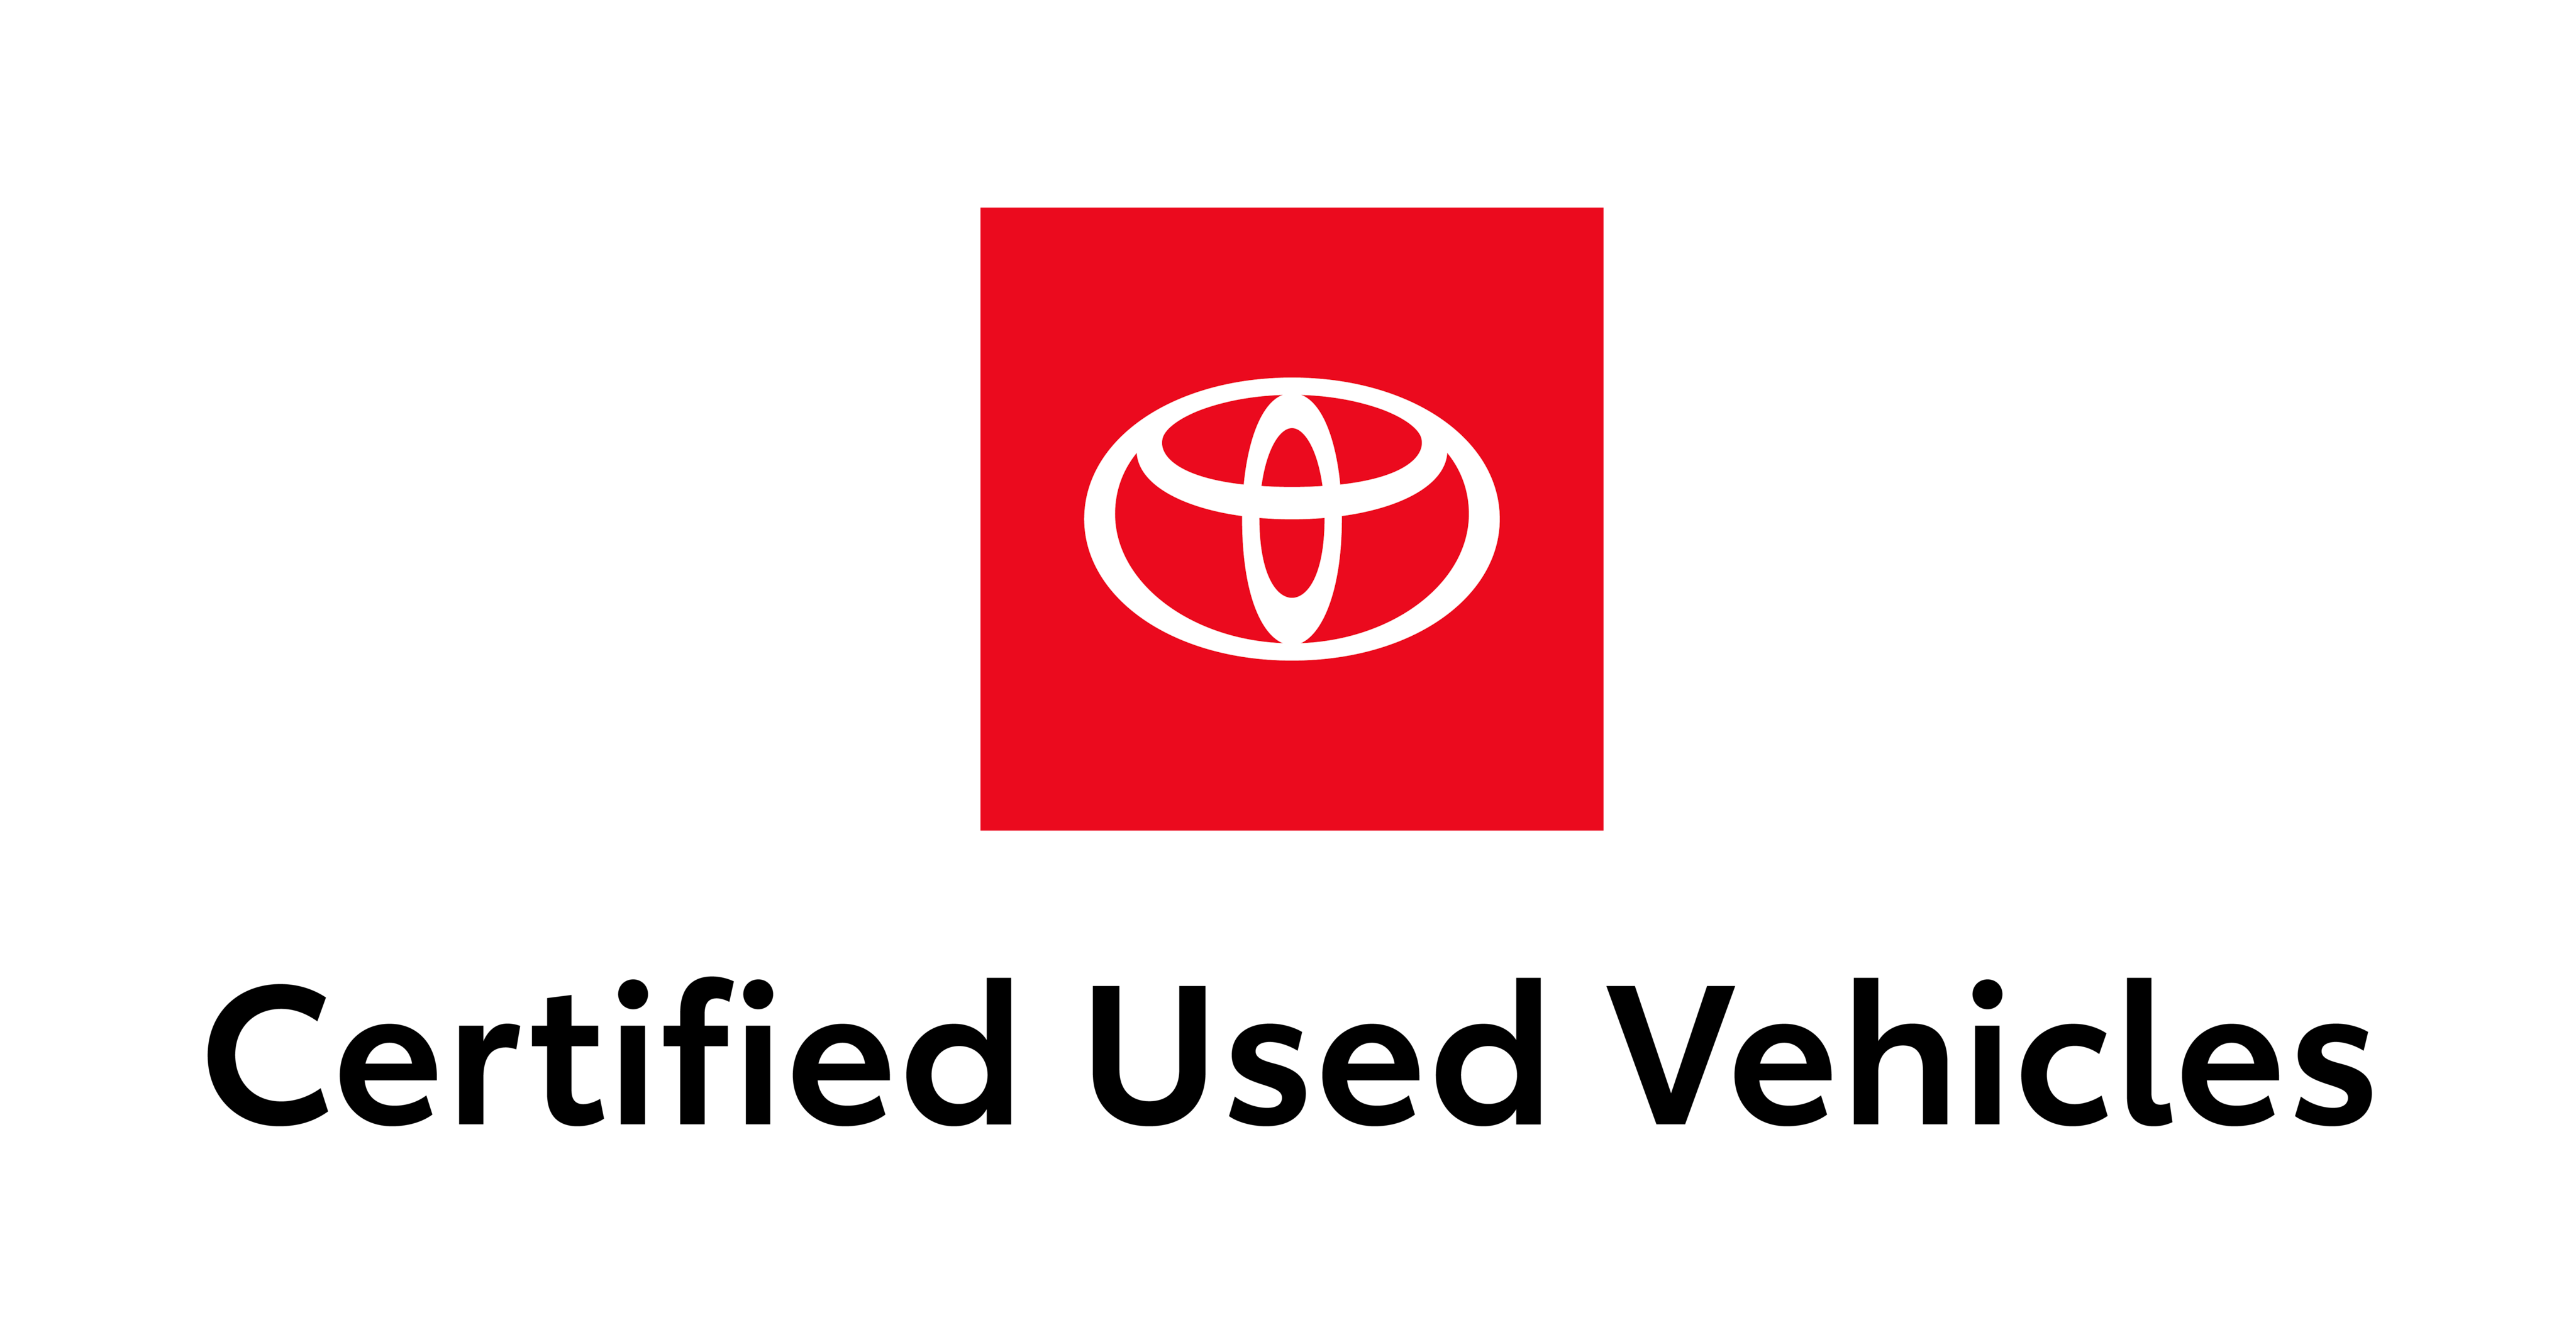 Toyota Certified Preowned Vehicles at [Dealership Name